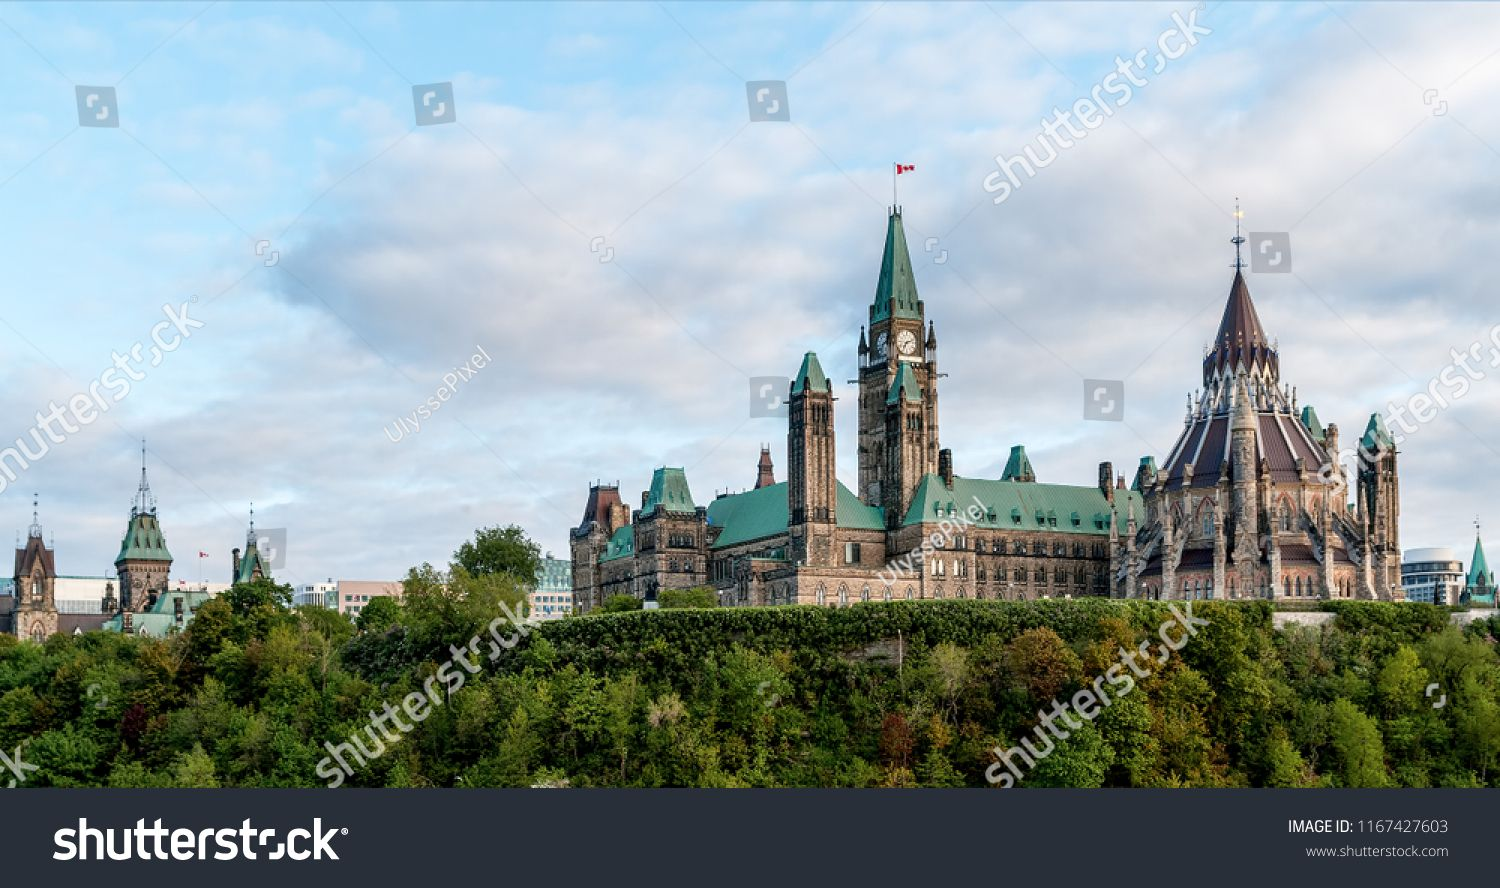 Parliament Hill Ottawa Ontario Canada Its Gothic Revival